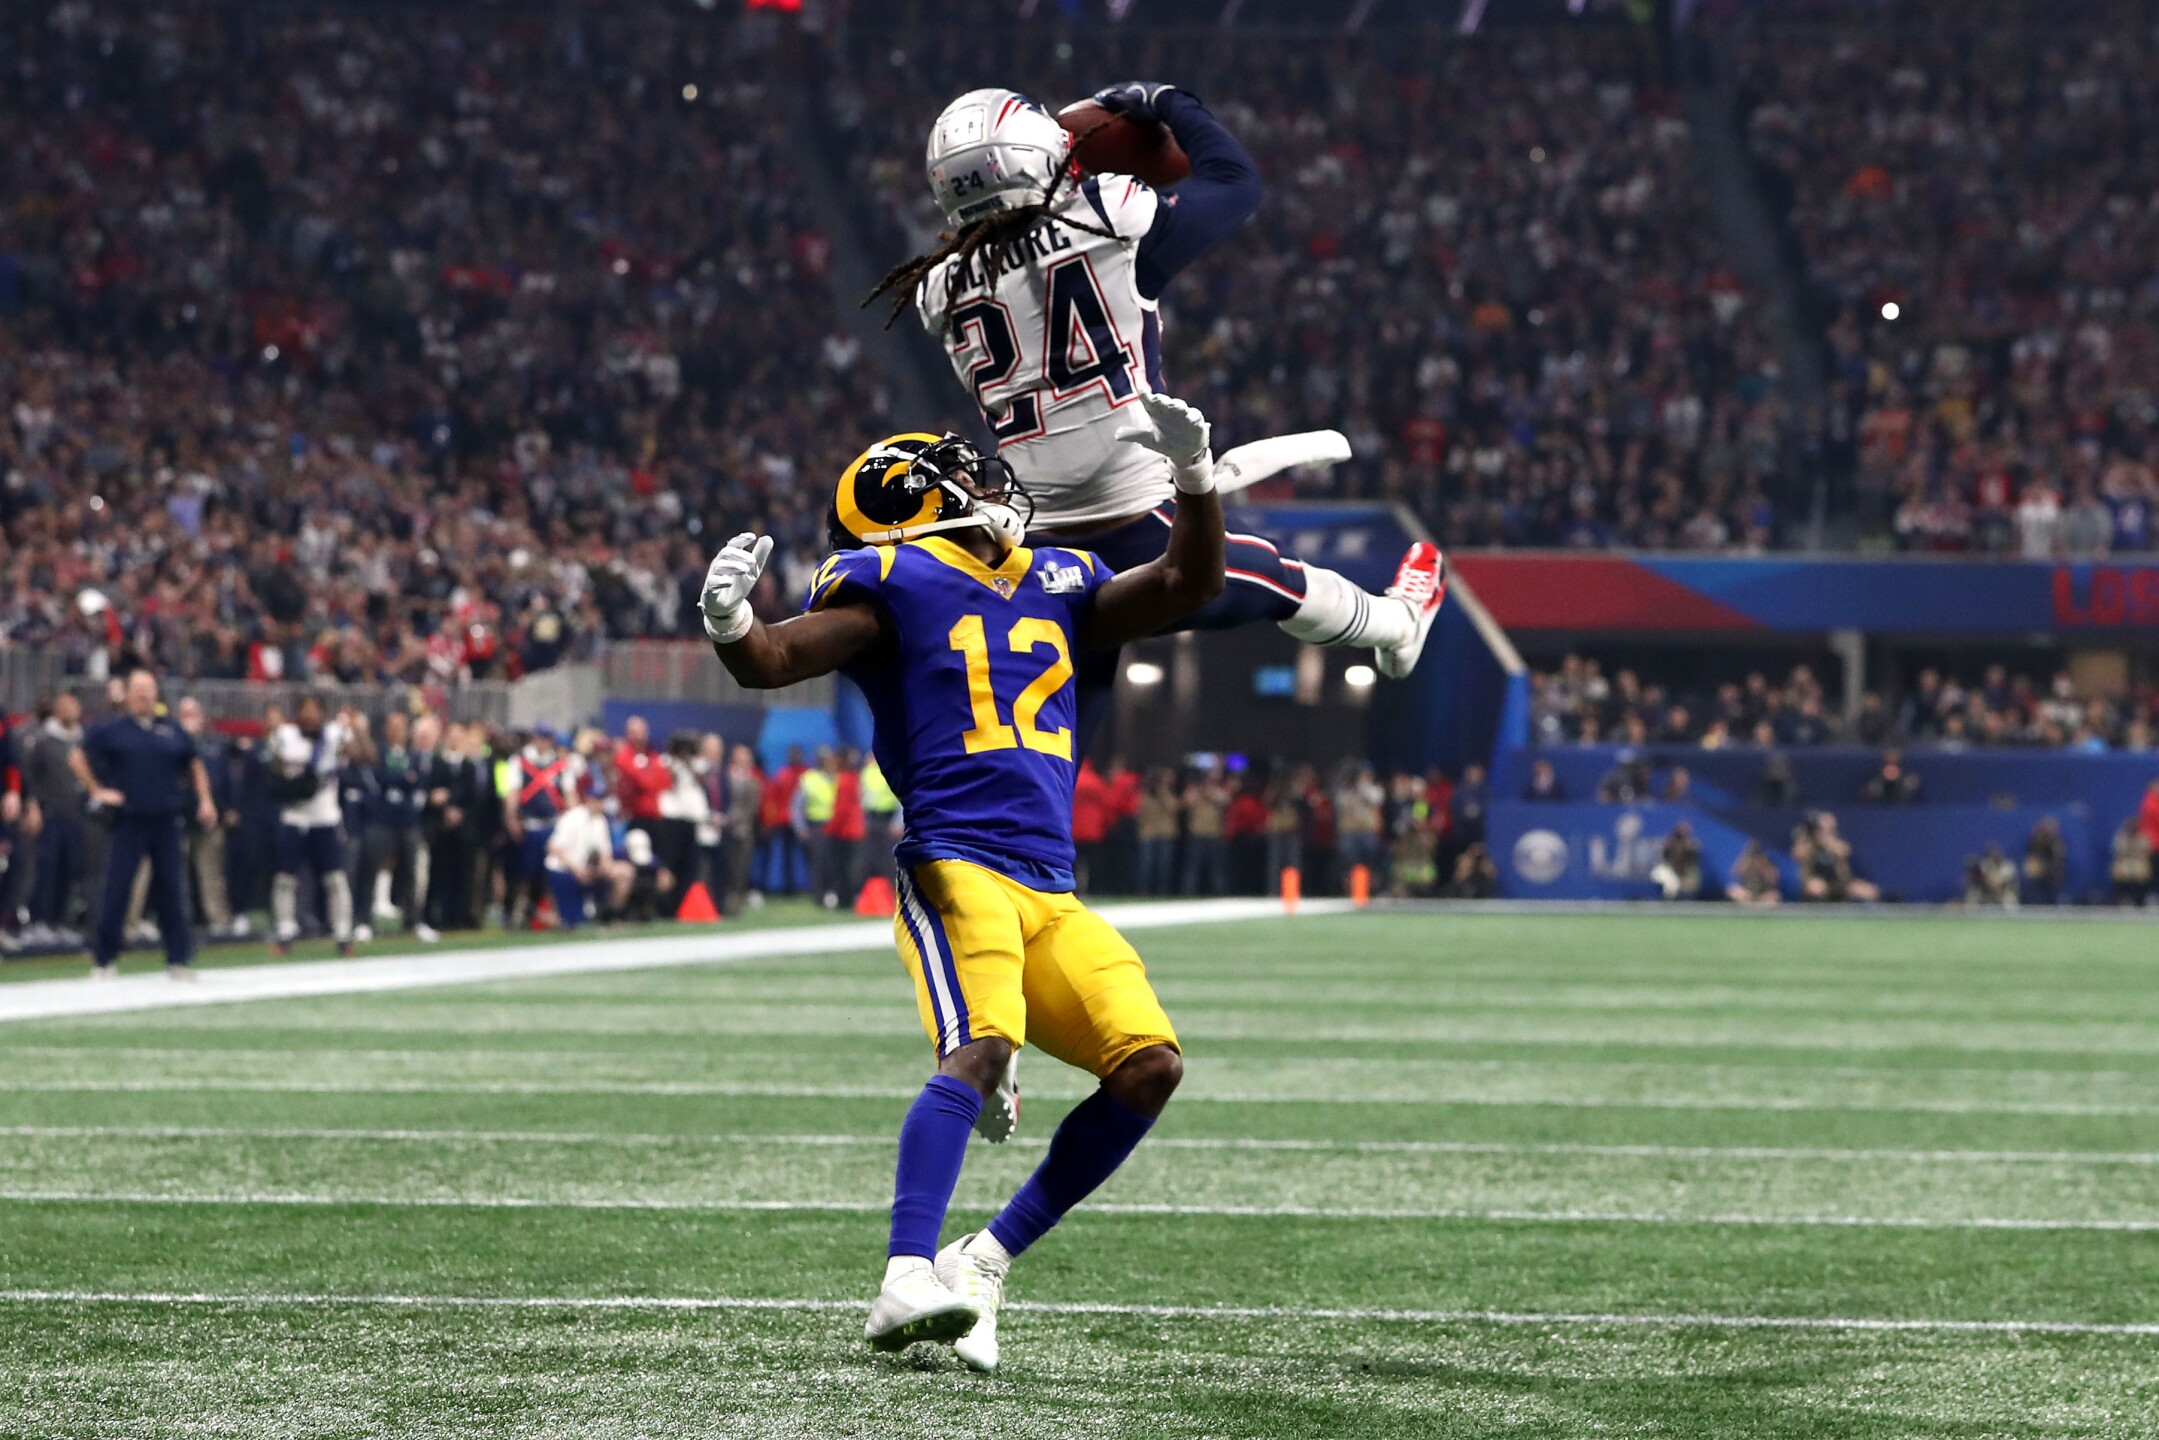 Photos: Patriots beat Rams 13-3 in Super Bowl LIII